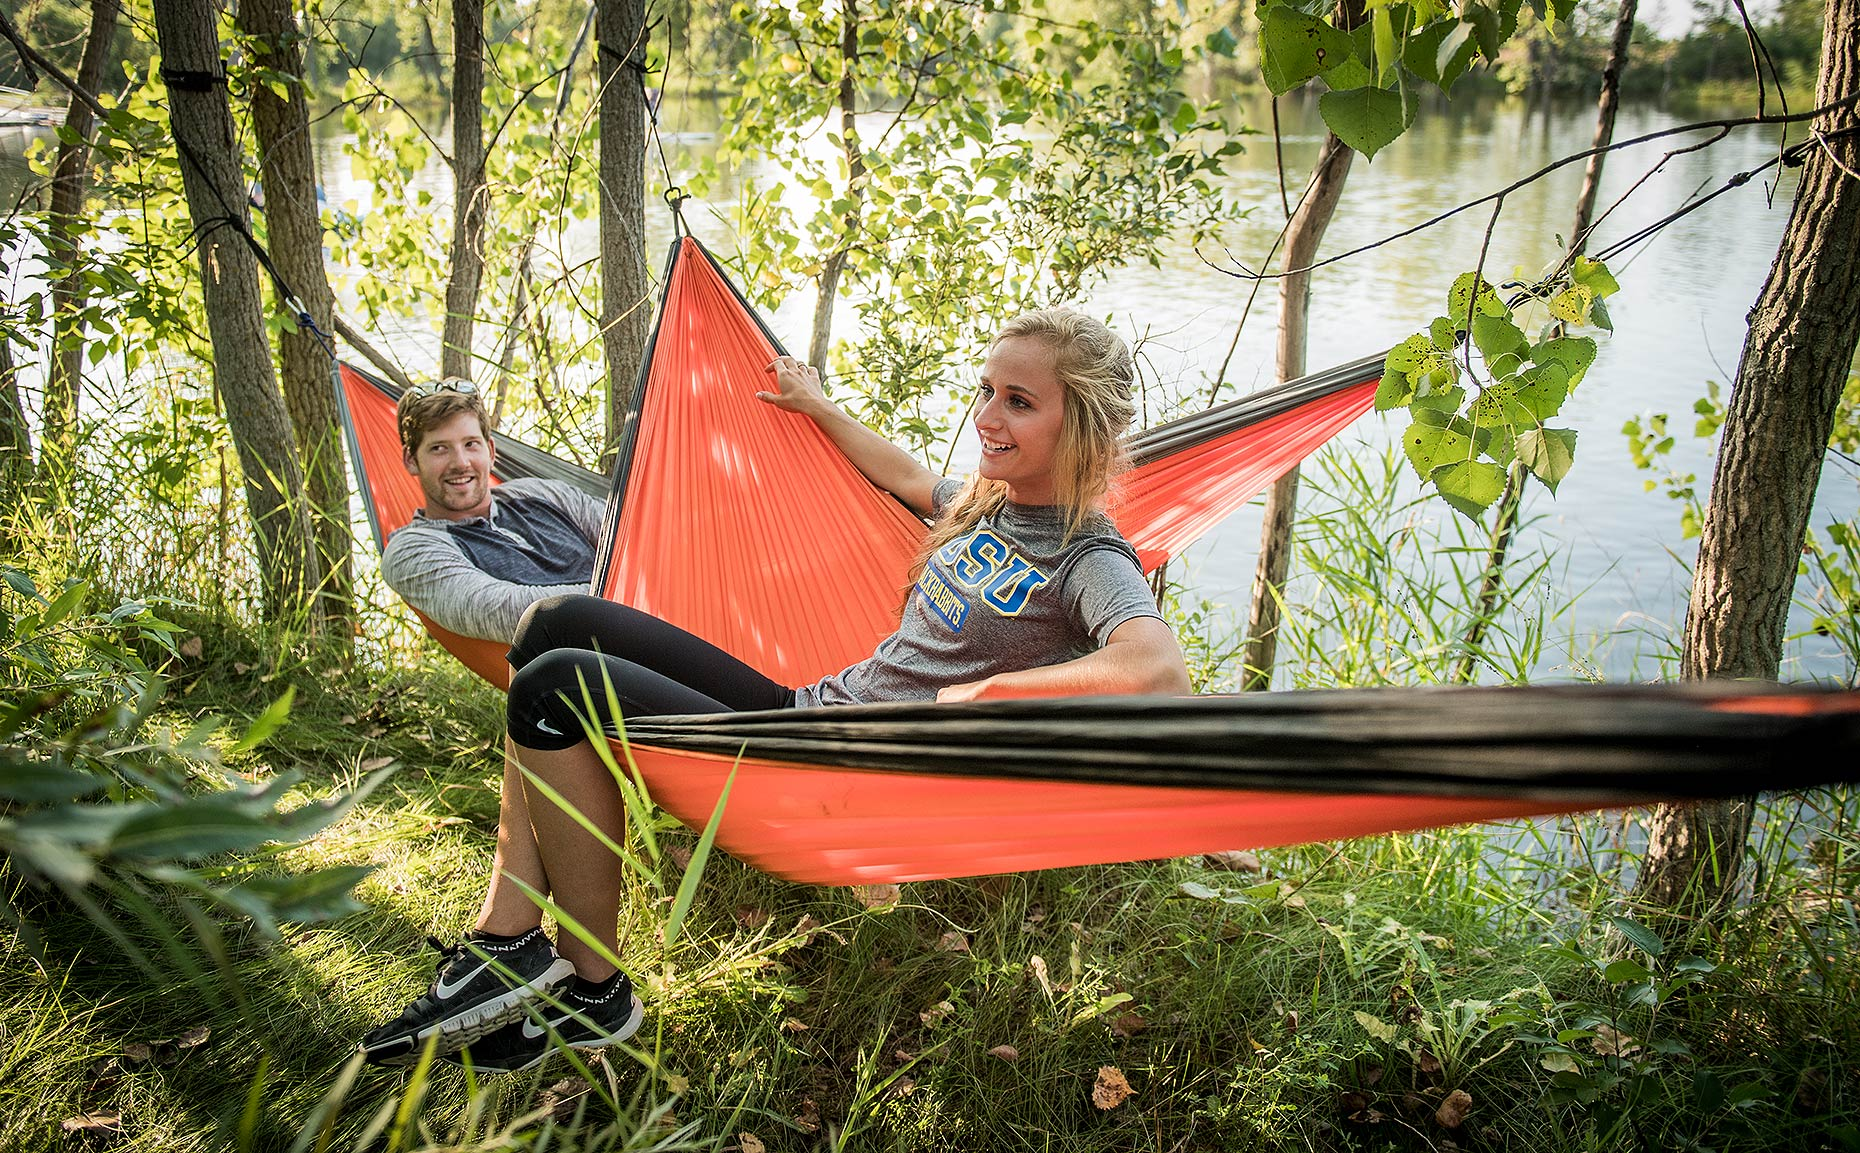 Students in Hammocks at Recreation Area